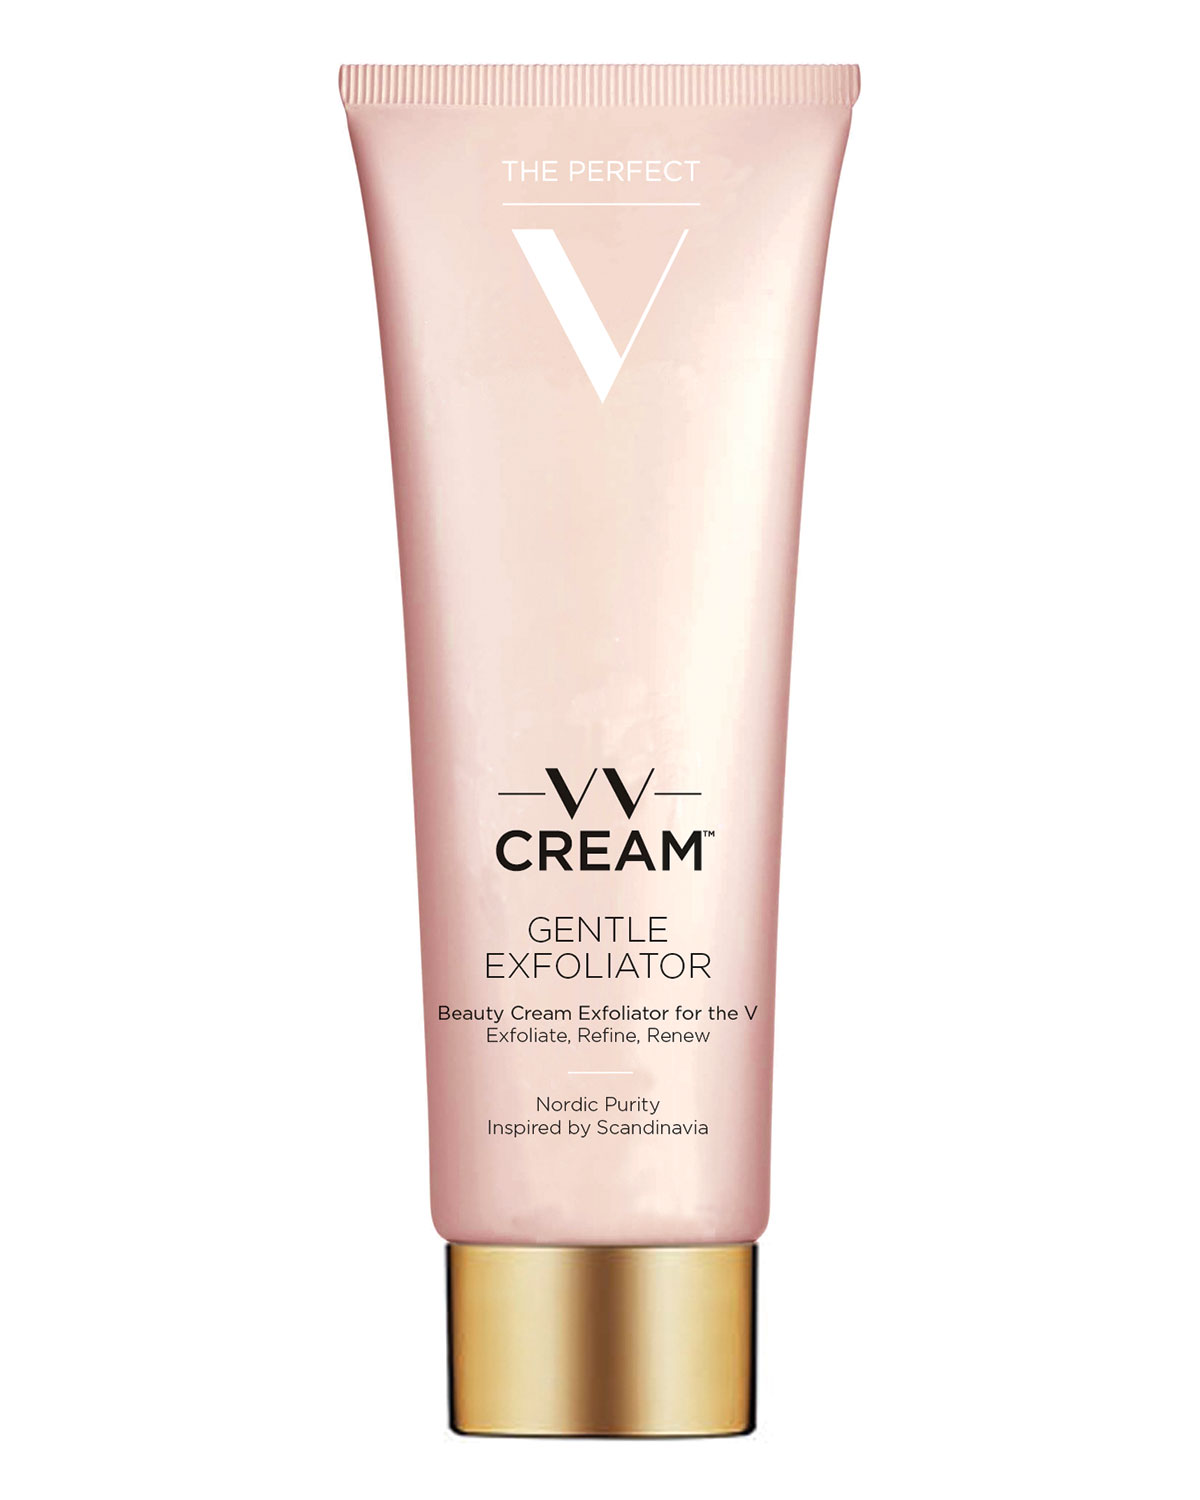 THE PERFECT V Vv Cream Gentle Exfoliator, 1.7 Oz./ 50 Ml